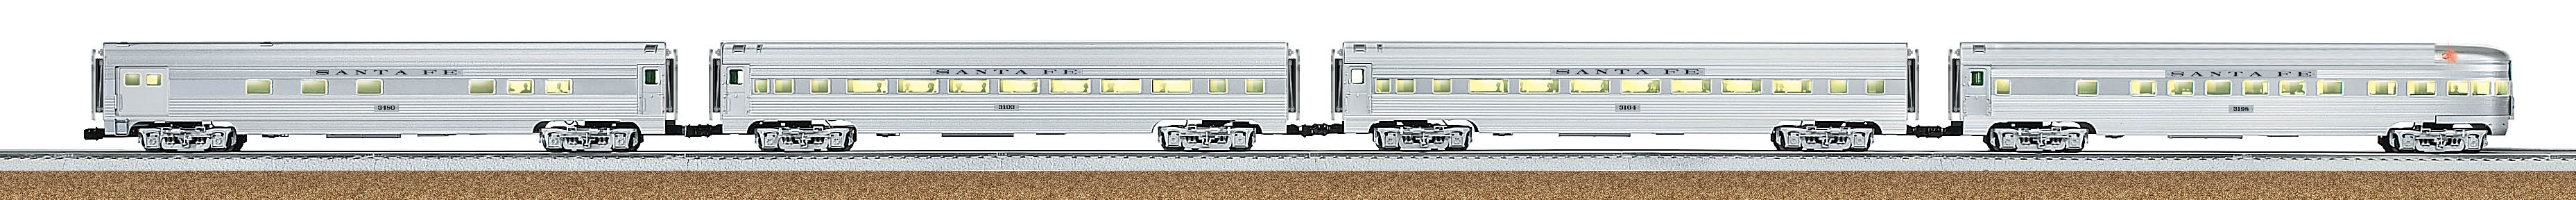 santa fe el capitan 18 aluminum streamlined passenger car 4 pack. Black Bedroom Furniture Sets. Home Design Ideas